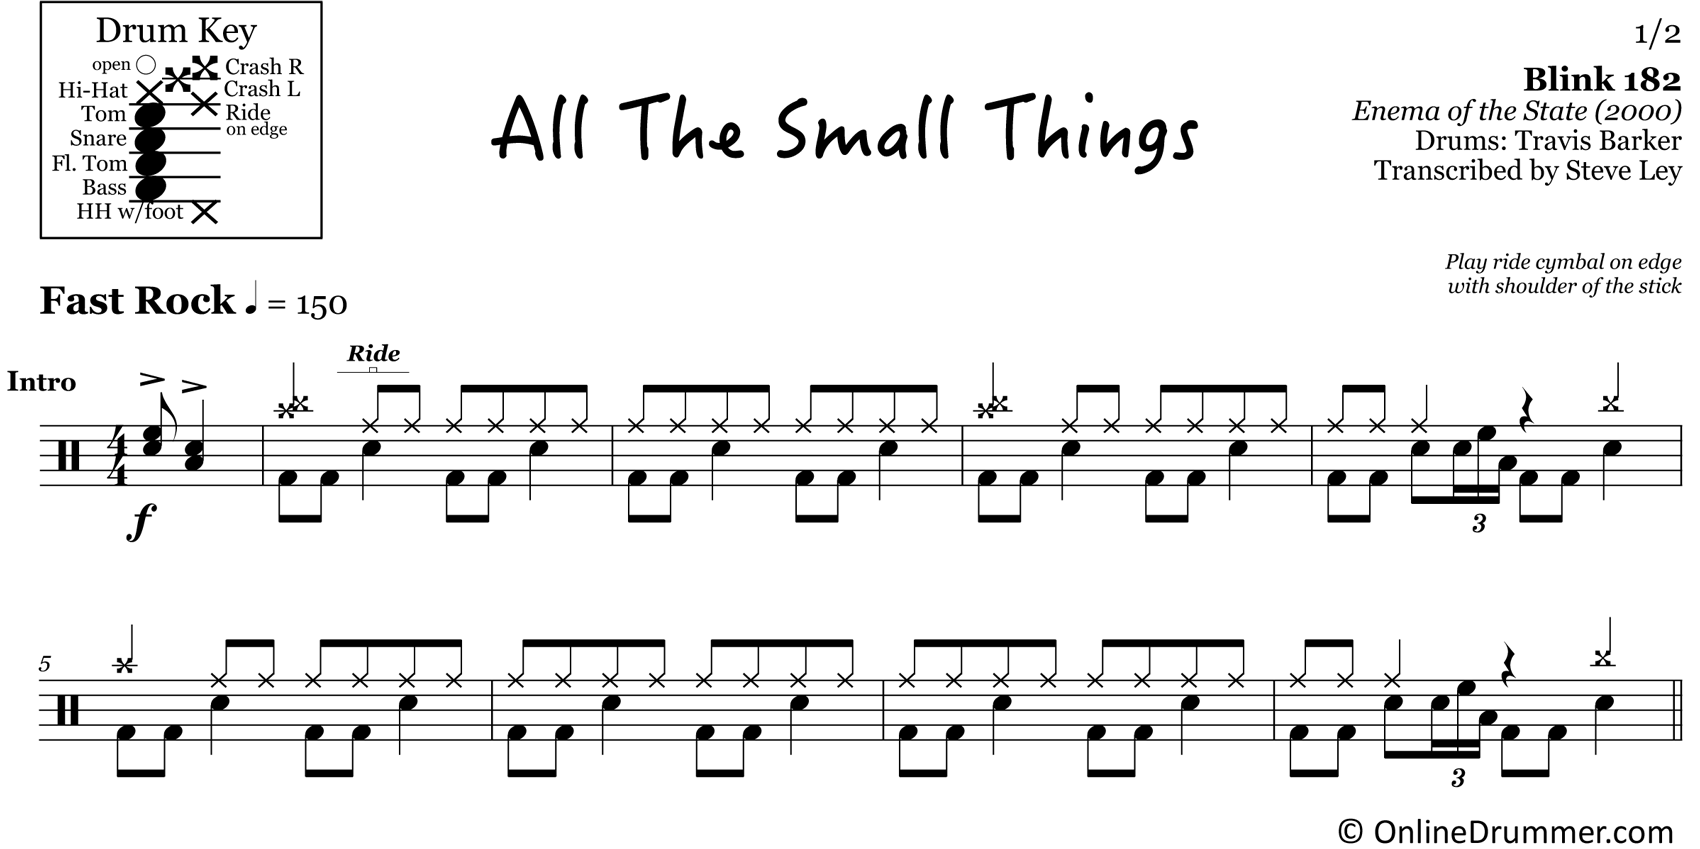 All The Small Things - Blink 182 - Drum Sheet Music